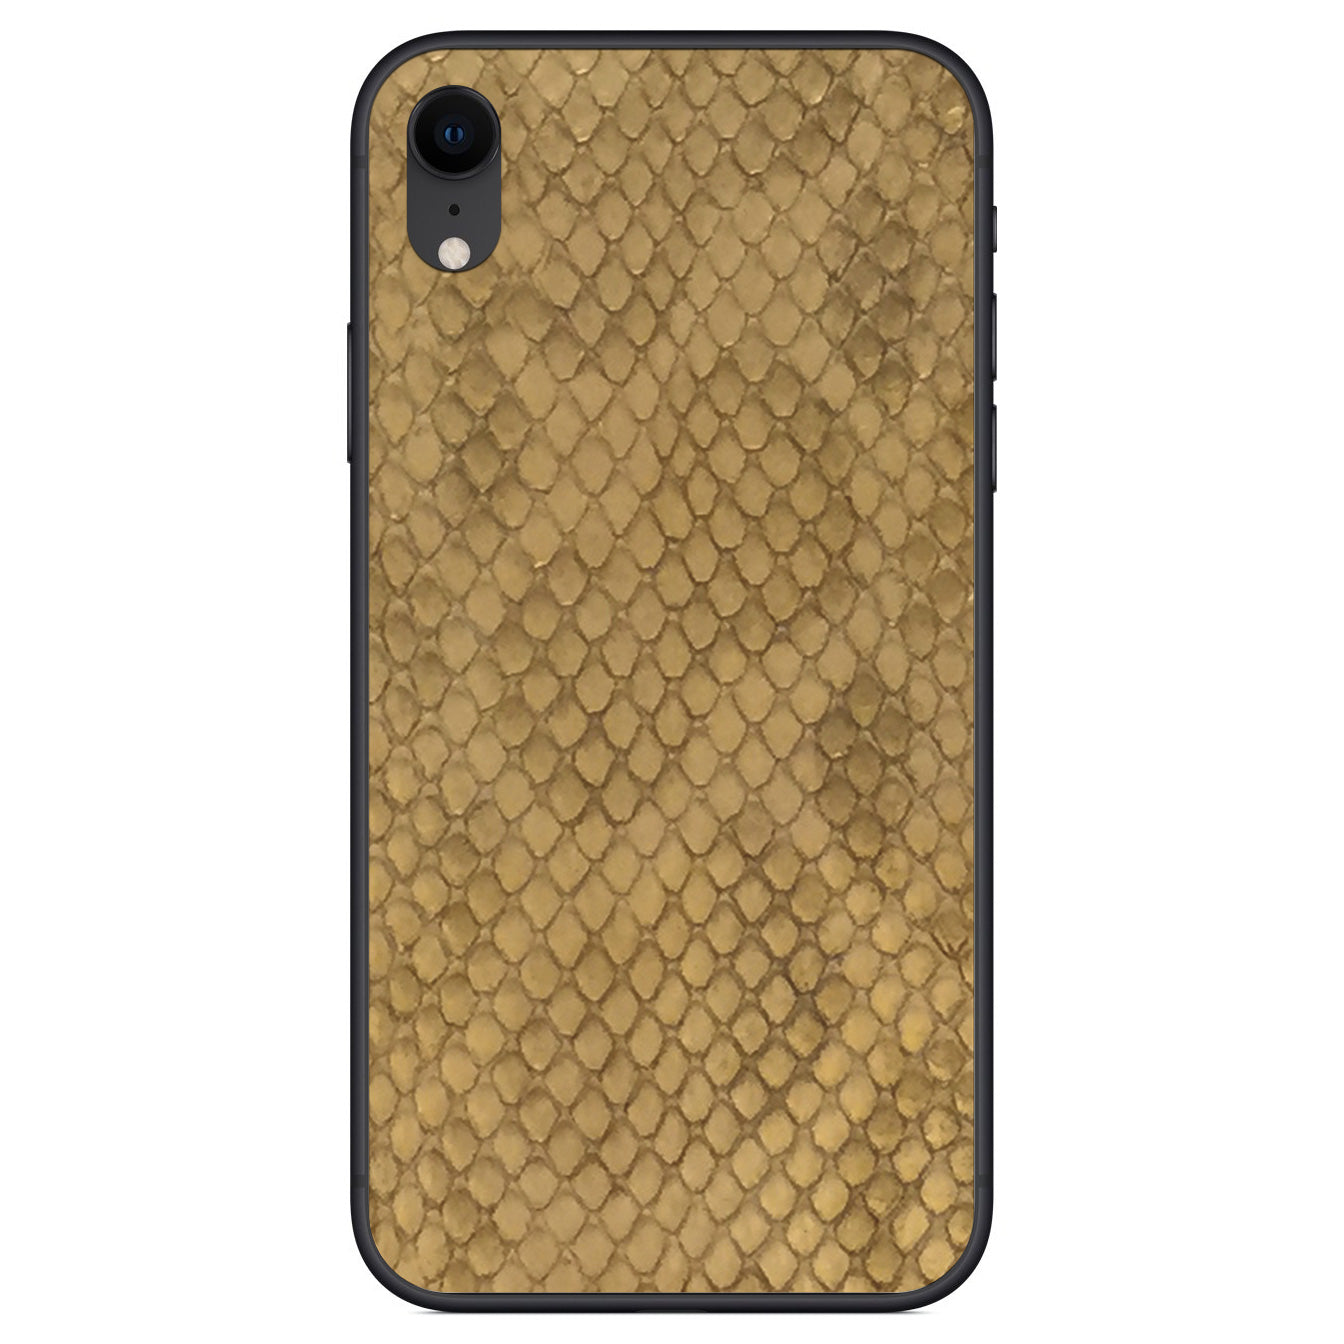 Gold Anaconda iPhone XR Leather Skin